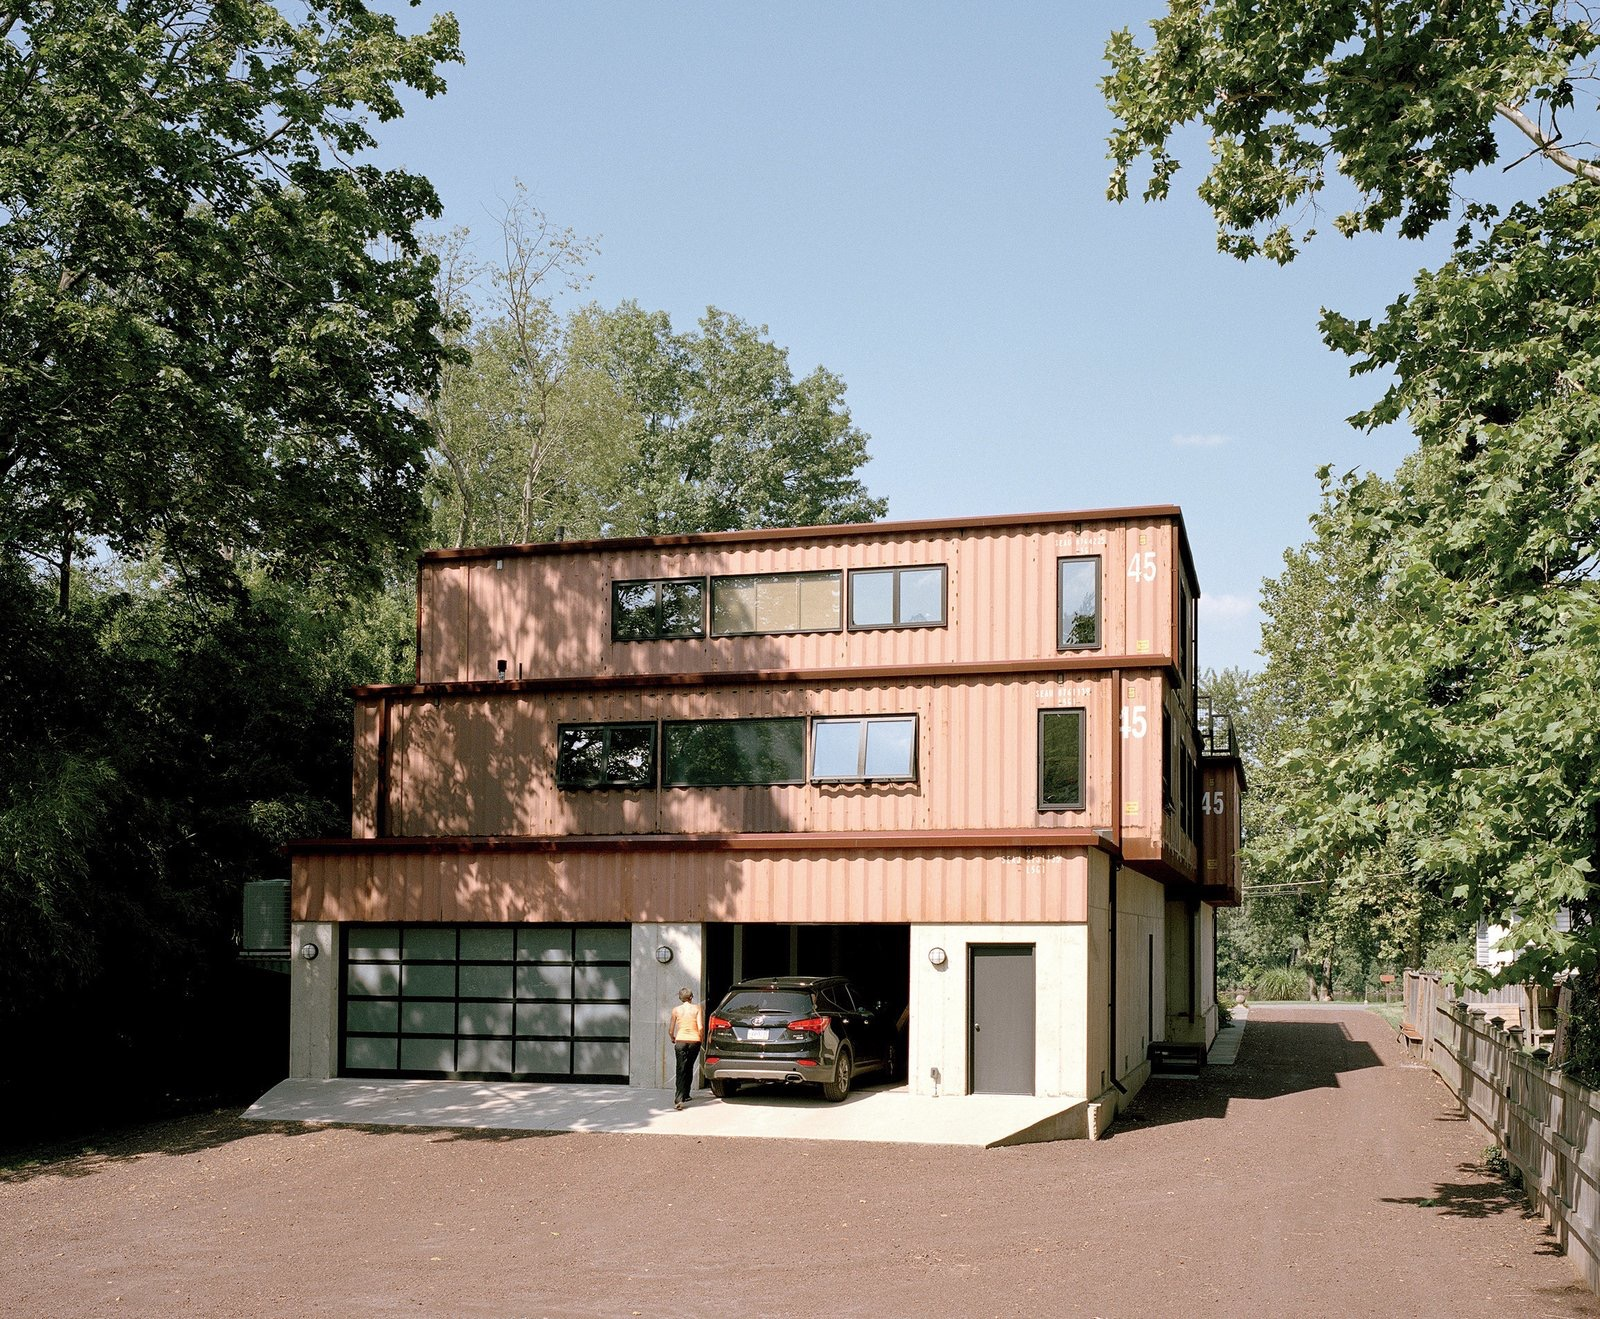 A couple retired make an mixed container housing